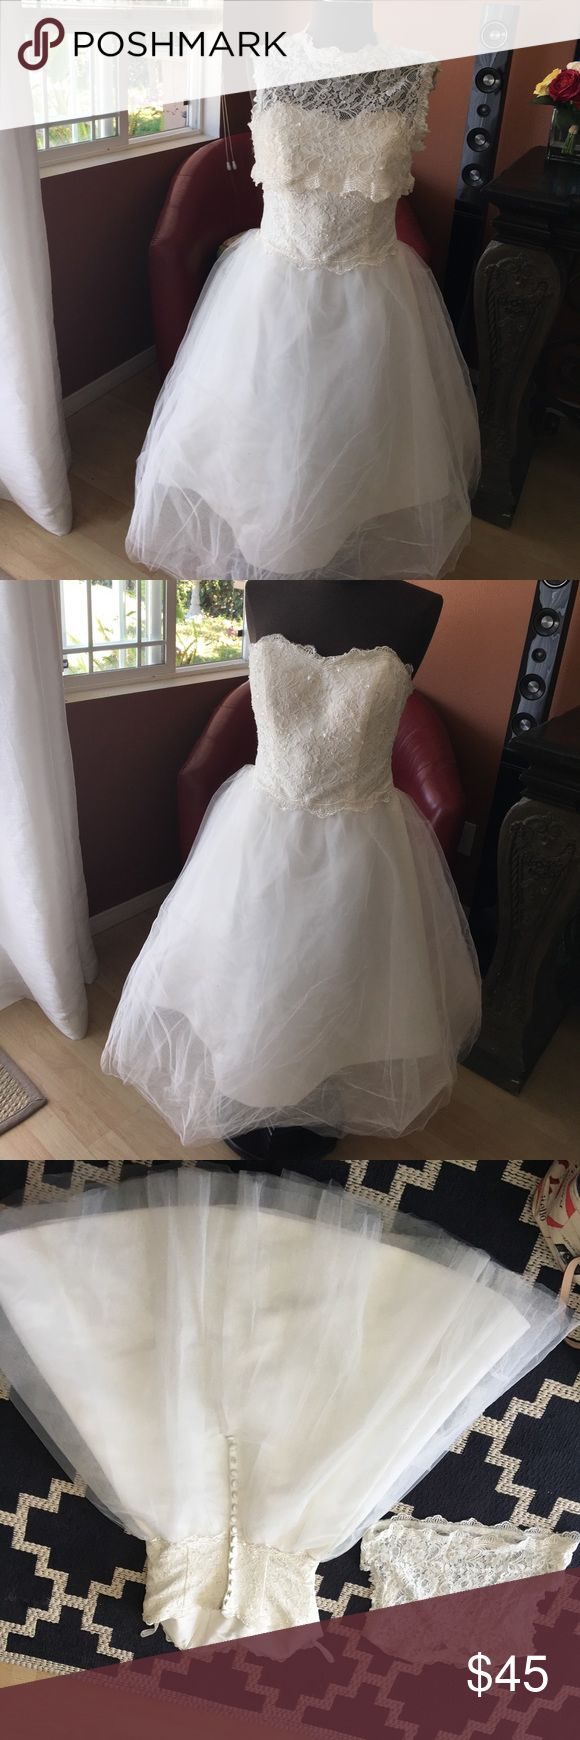 Short off white wedding dress This is a short off white wedding dress no brand or tags on it, I purchased it in a local store and I use it only once. Needs to be taken to the dry cleaner doesn't have any stains also is missing a cap button. Look at the pictures before purchasing no brand Dresses Wedding